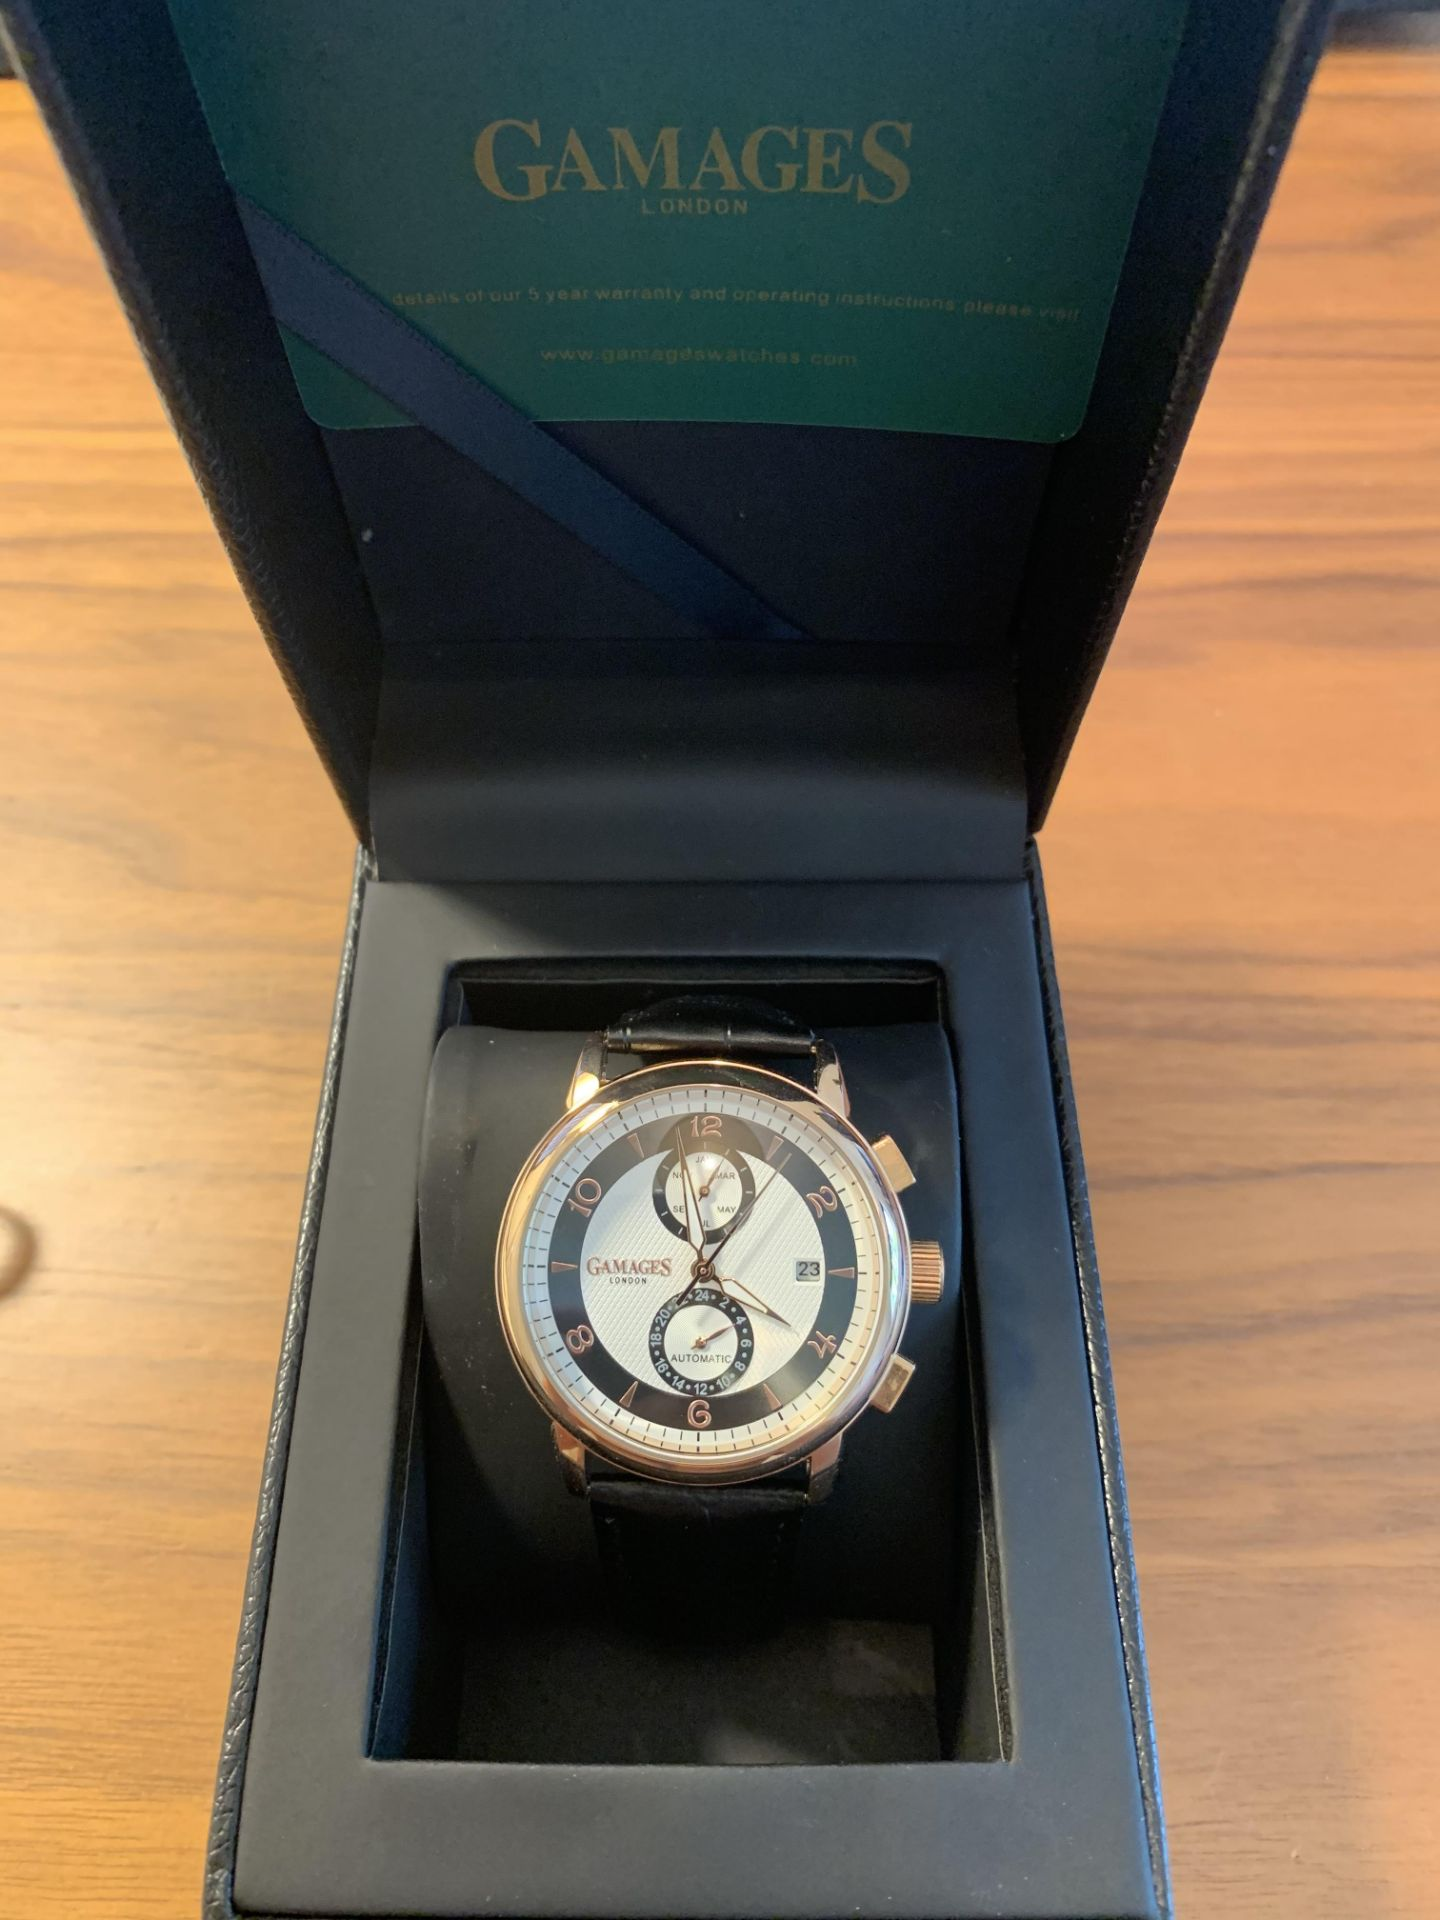 Limited Edition Hand Assembled Gamages Split Mystique Silver – 5 Year Warranty & Free Delivery - Image 2 of 5